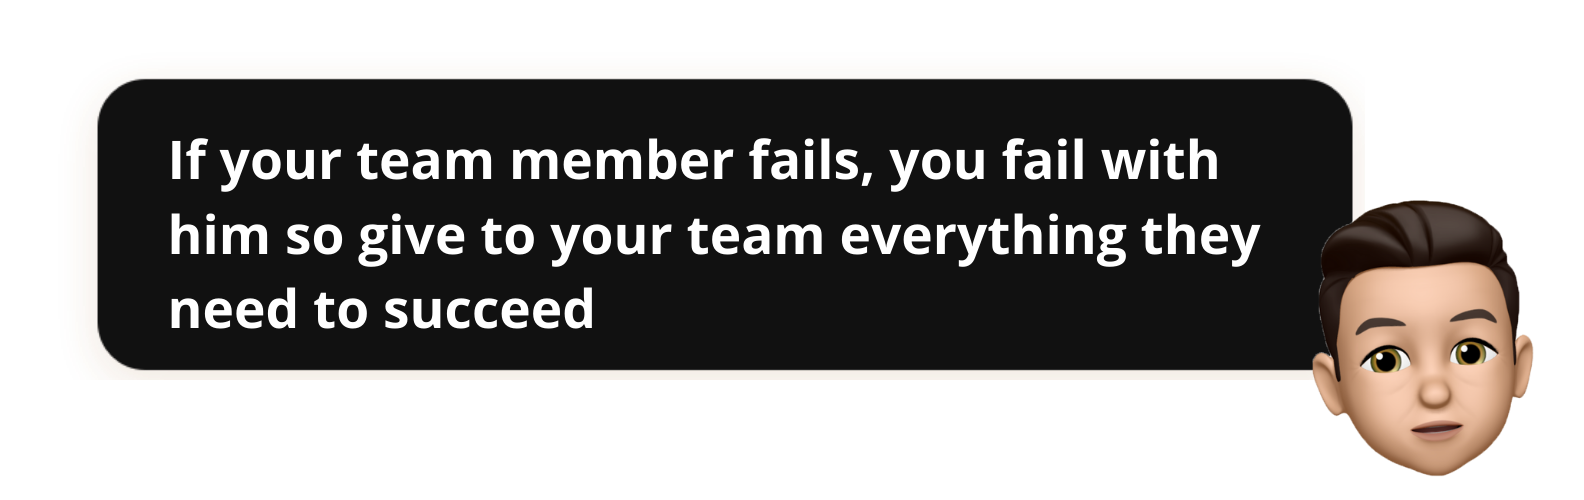 If your team member fails, you fail with him so give to your team everything they need to succeed - Popwork